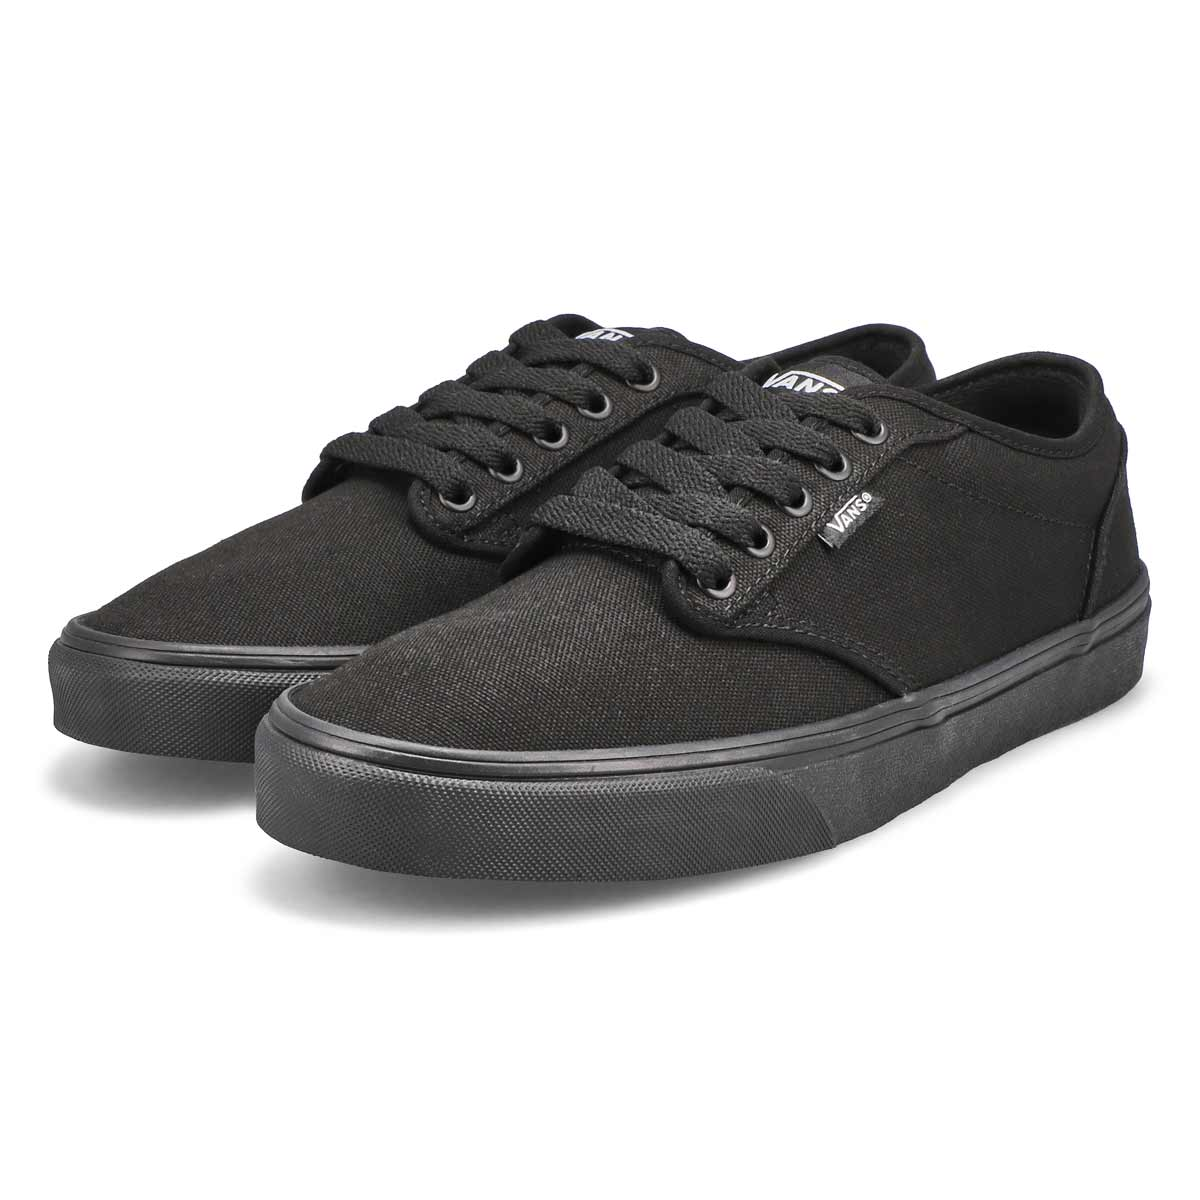 Mns Atwood blk/blk cnvs lace up snkr